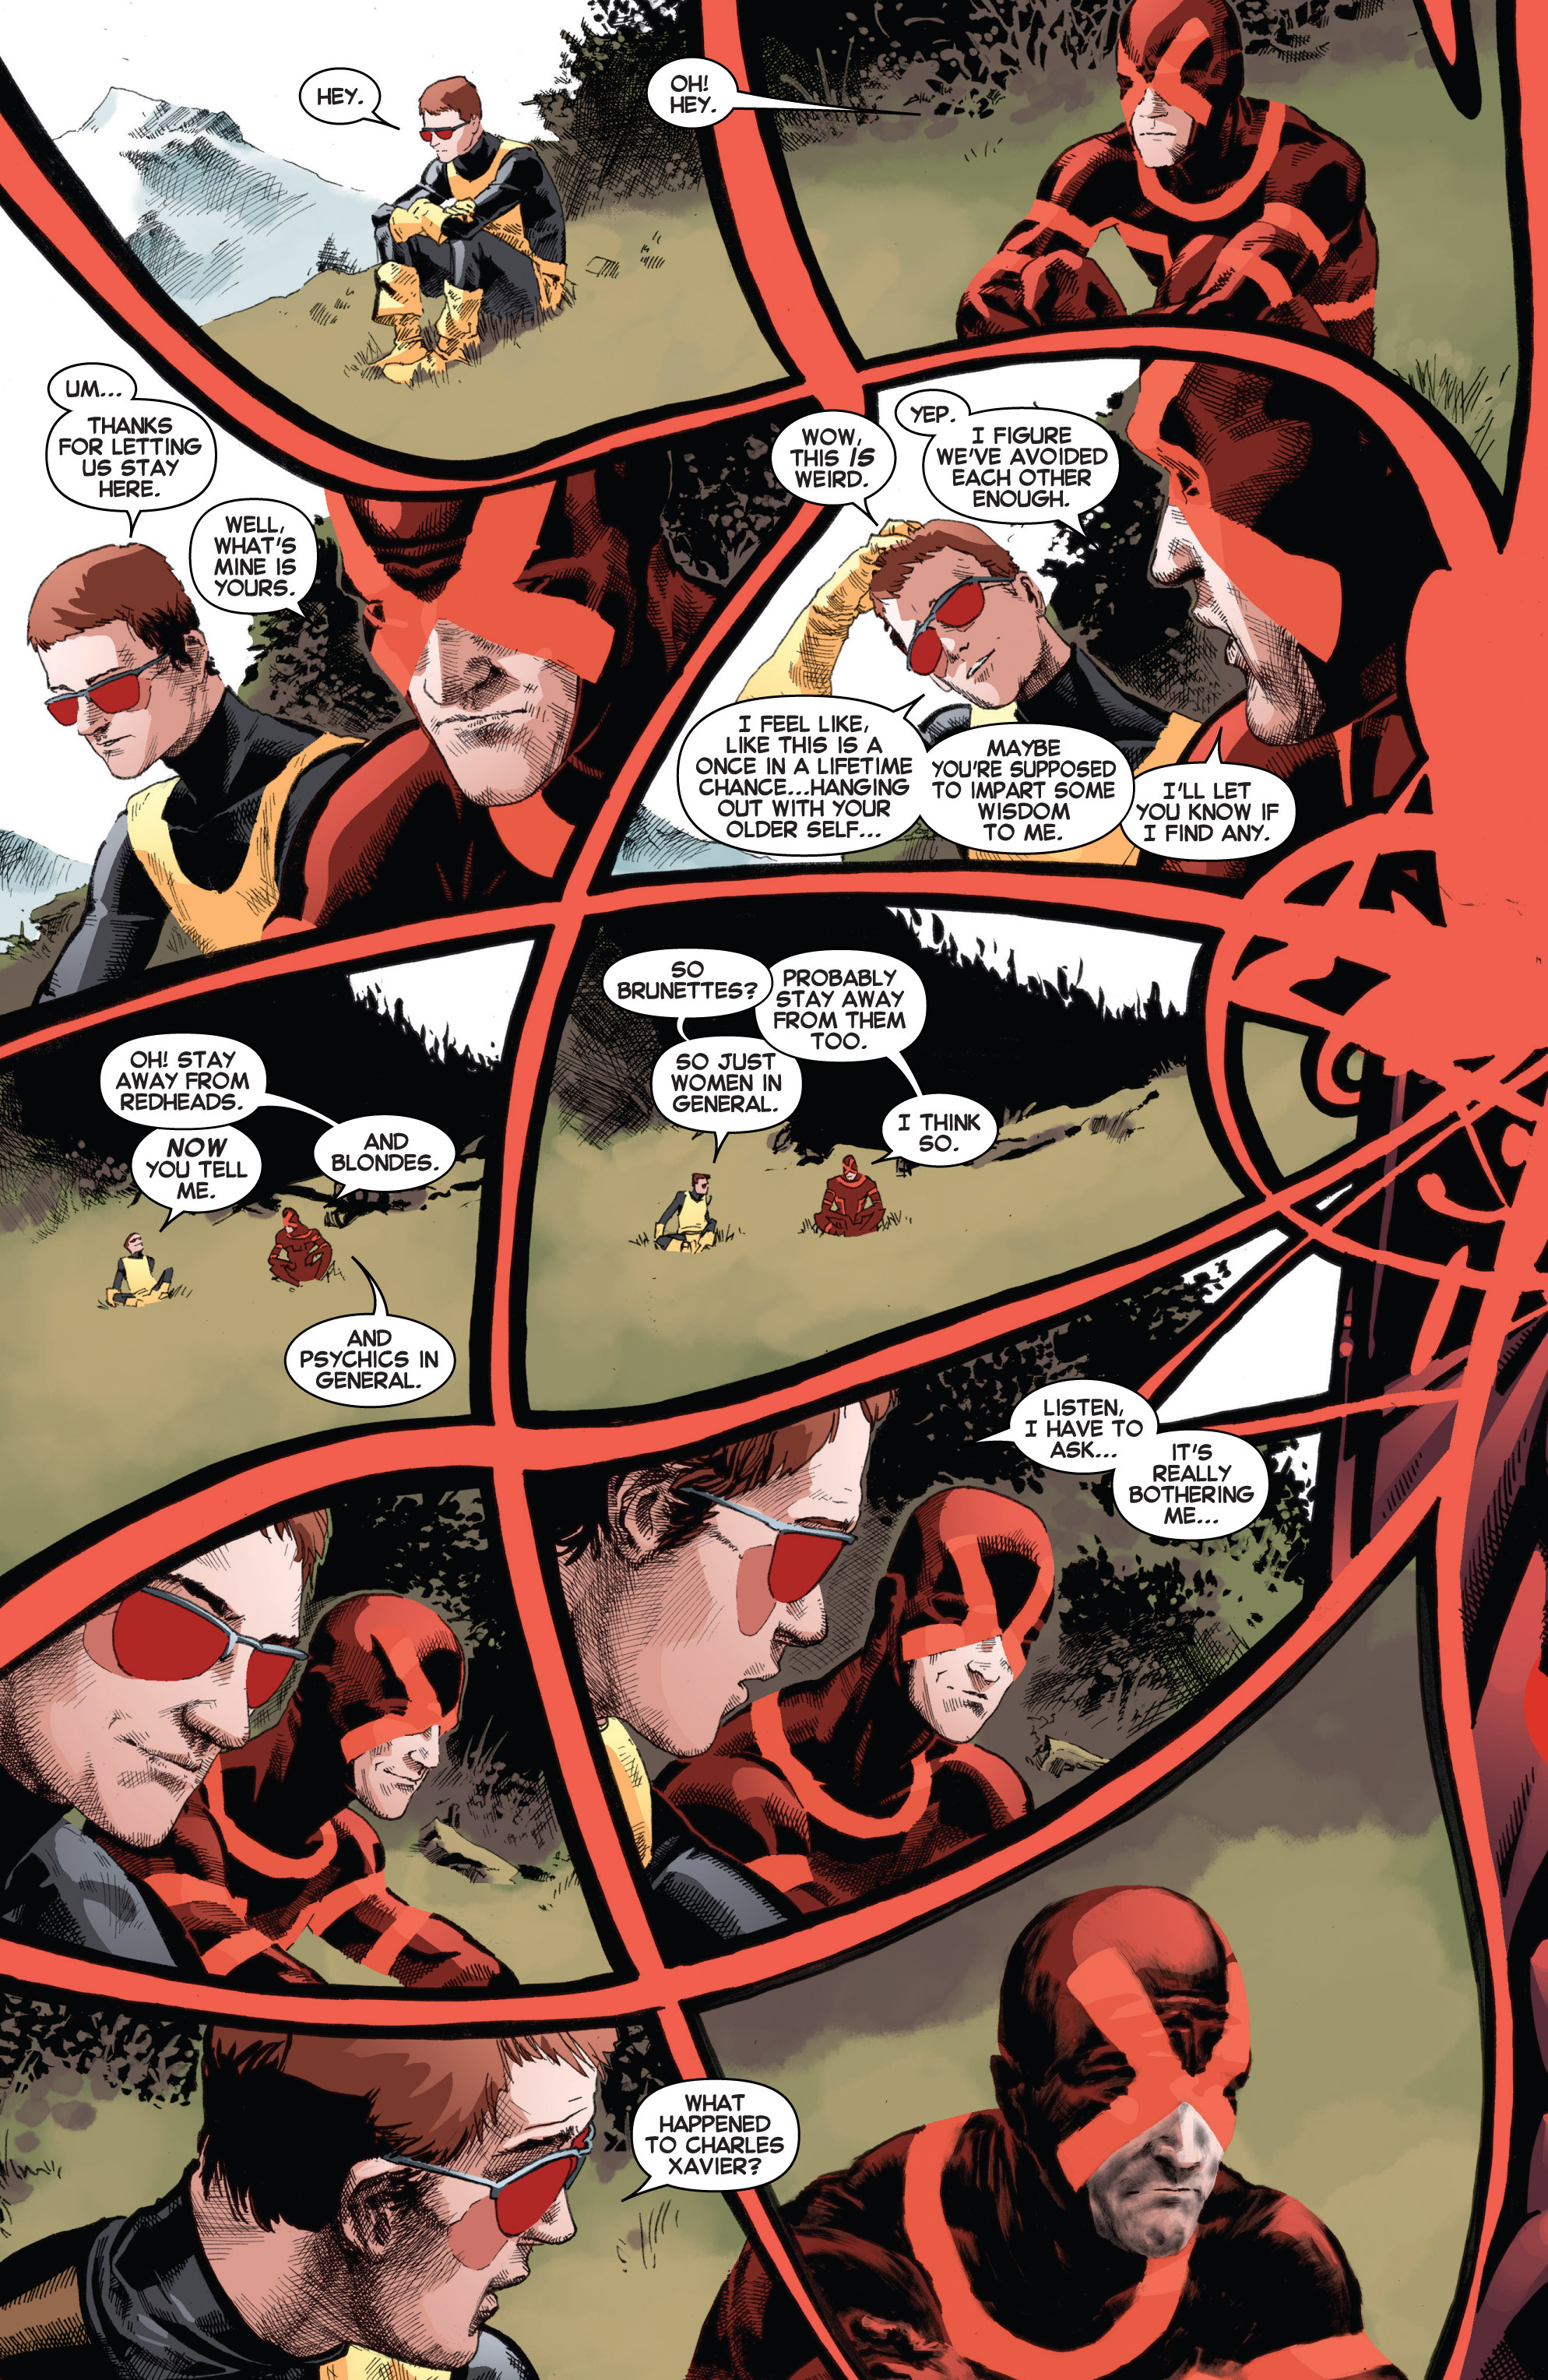 Read online Uncanny X-Men (2013) comic -  Issue # _TPB 3 - The Good, The Bad, The Inhuman - 102